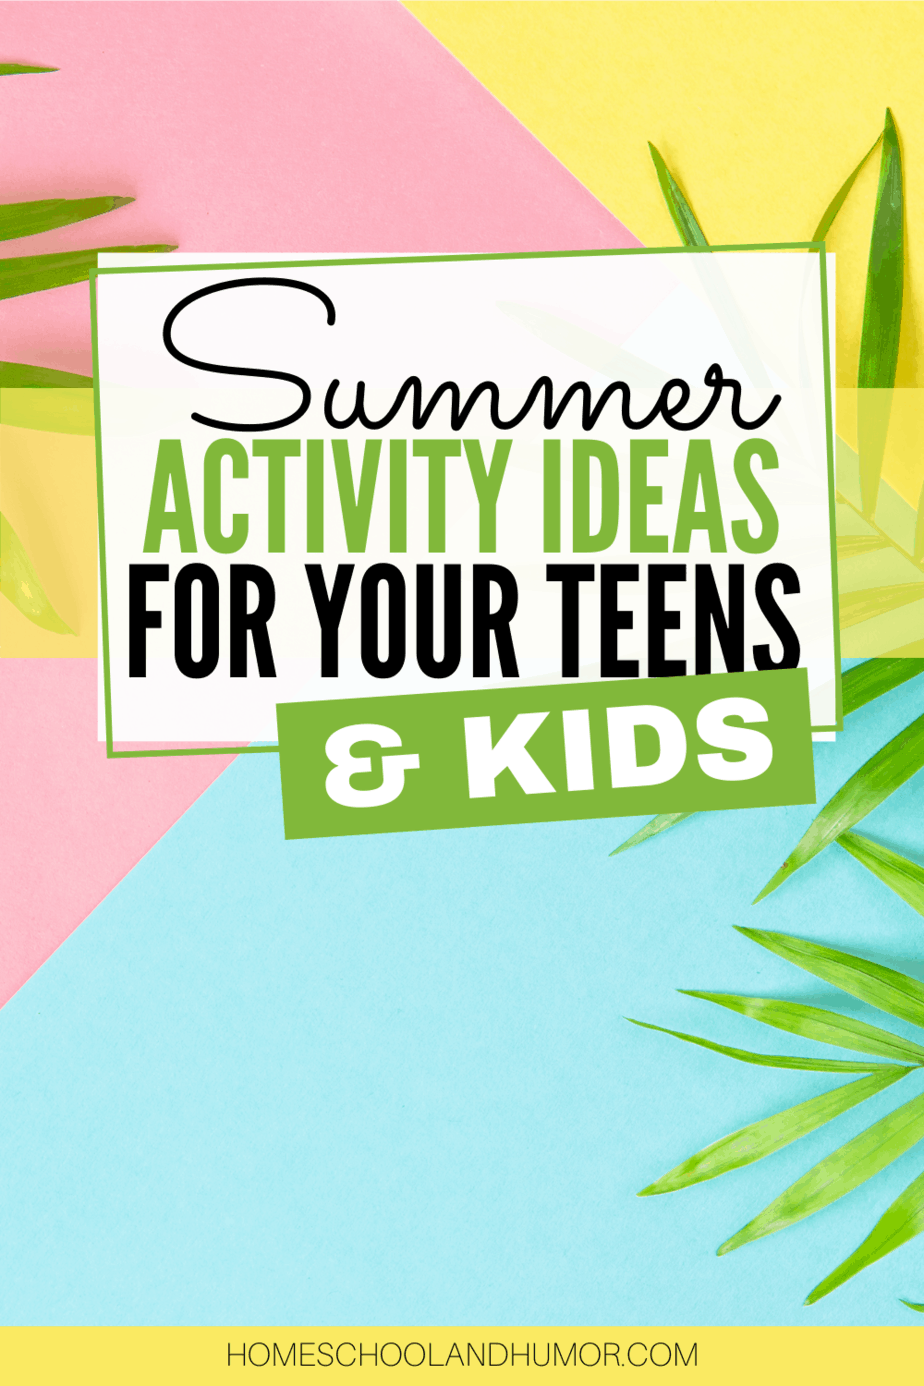 Keep Busy With These Fun Summer Activities for Teens and Kids in 2021